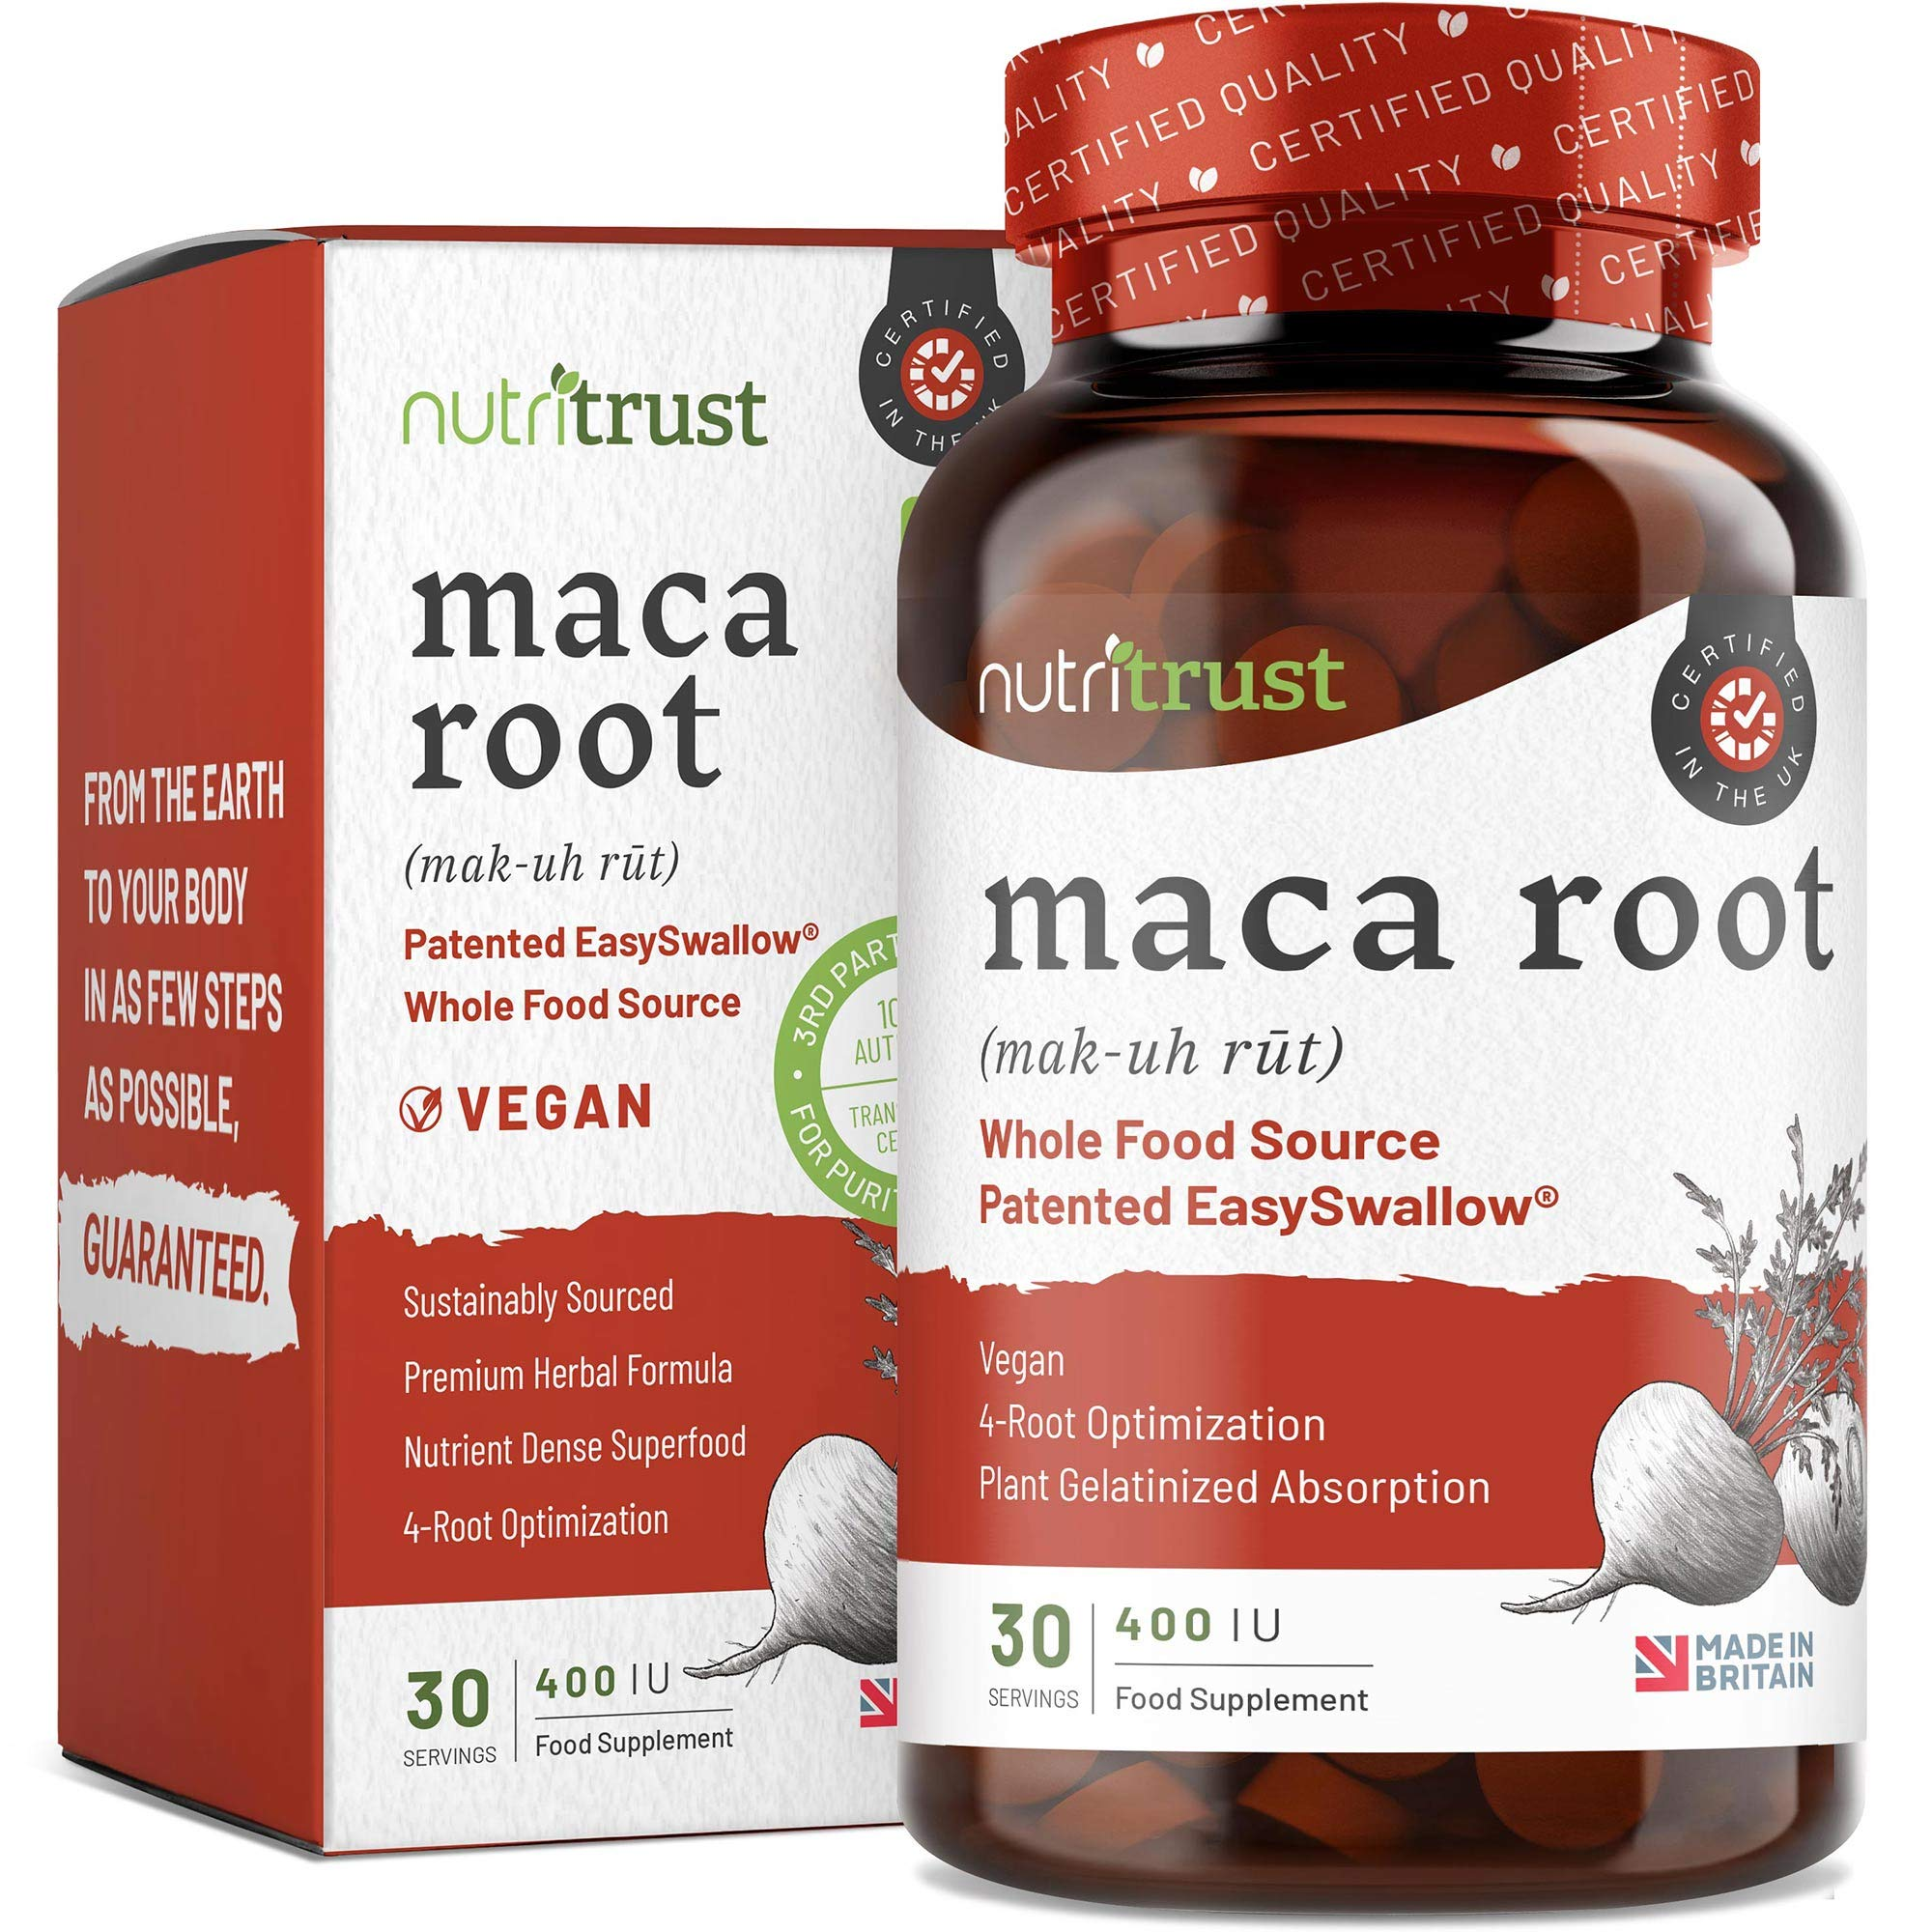 THE WINNER 2020* PREMIUM Maca Root Capsules - Nutritionist Formulated & Sustainably-Sourced Peruvian Maca Root - Vegetarian & Vegetarian Capsules - GMP Certified/Made in Britain